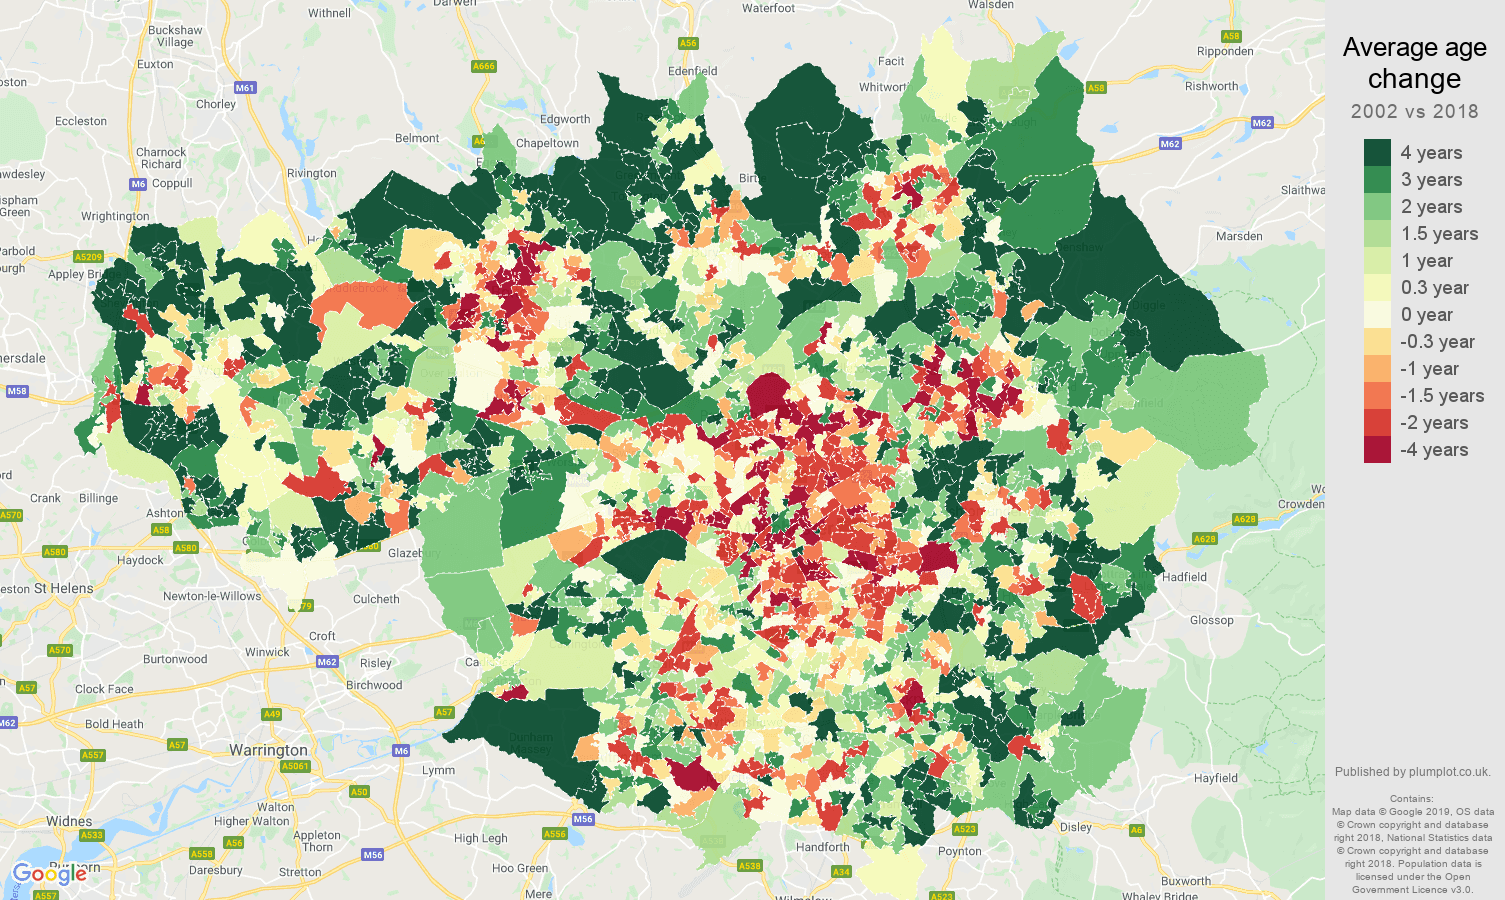 Greater Manchester average age change map